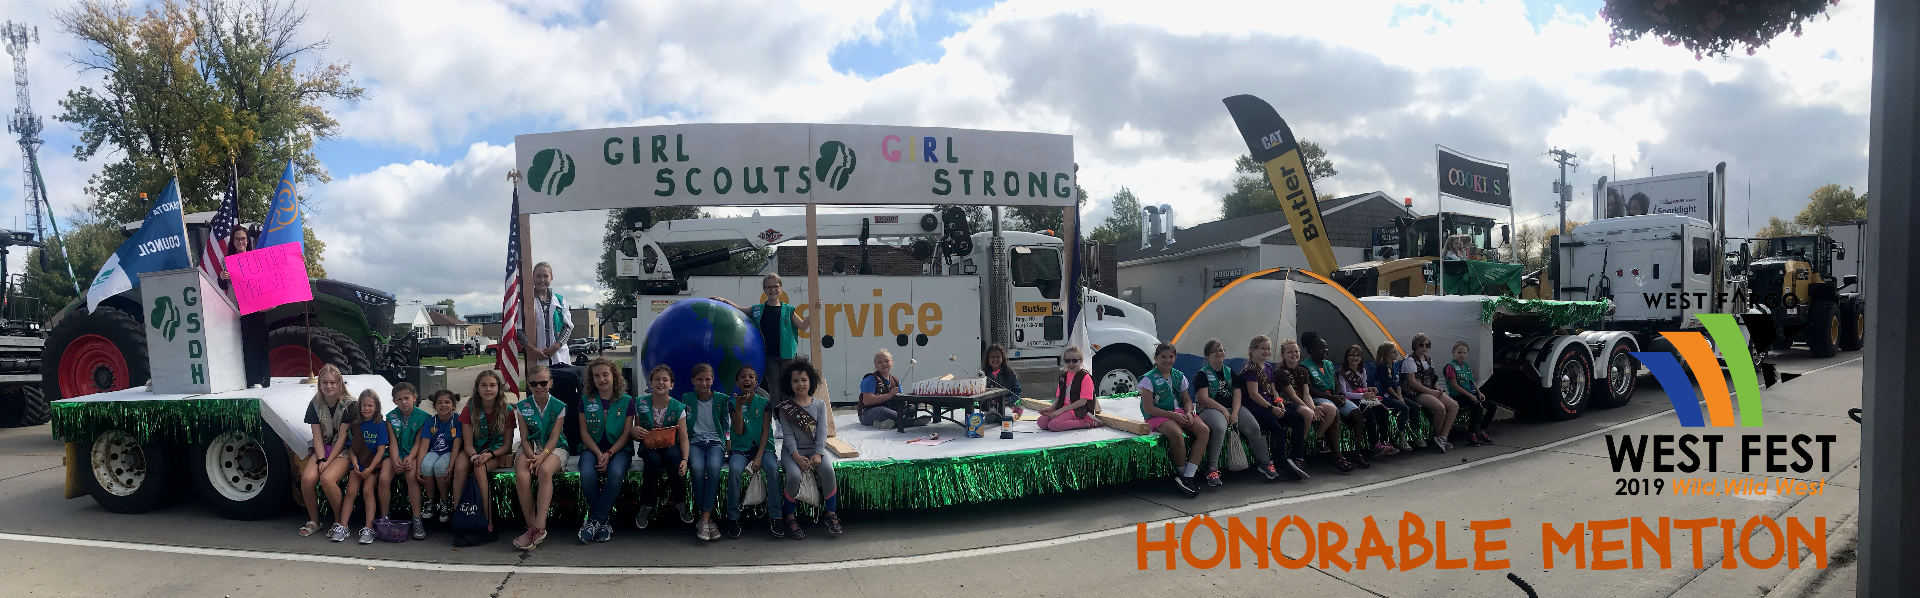 Girl Scouts - honorable mention